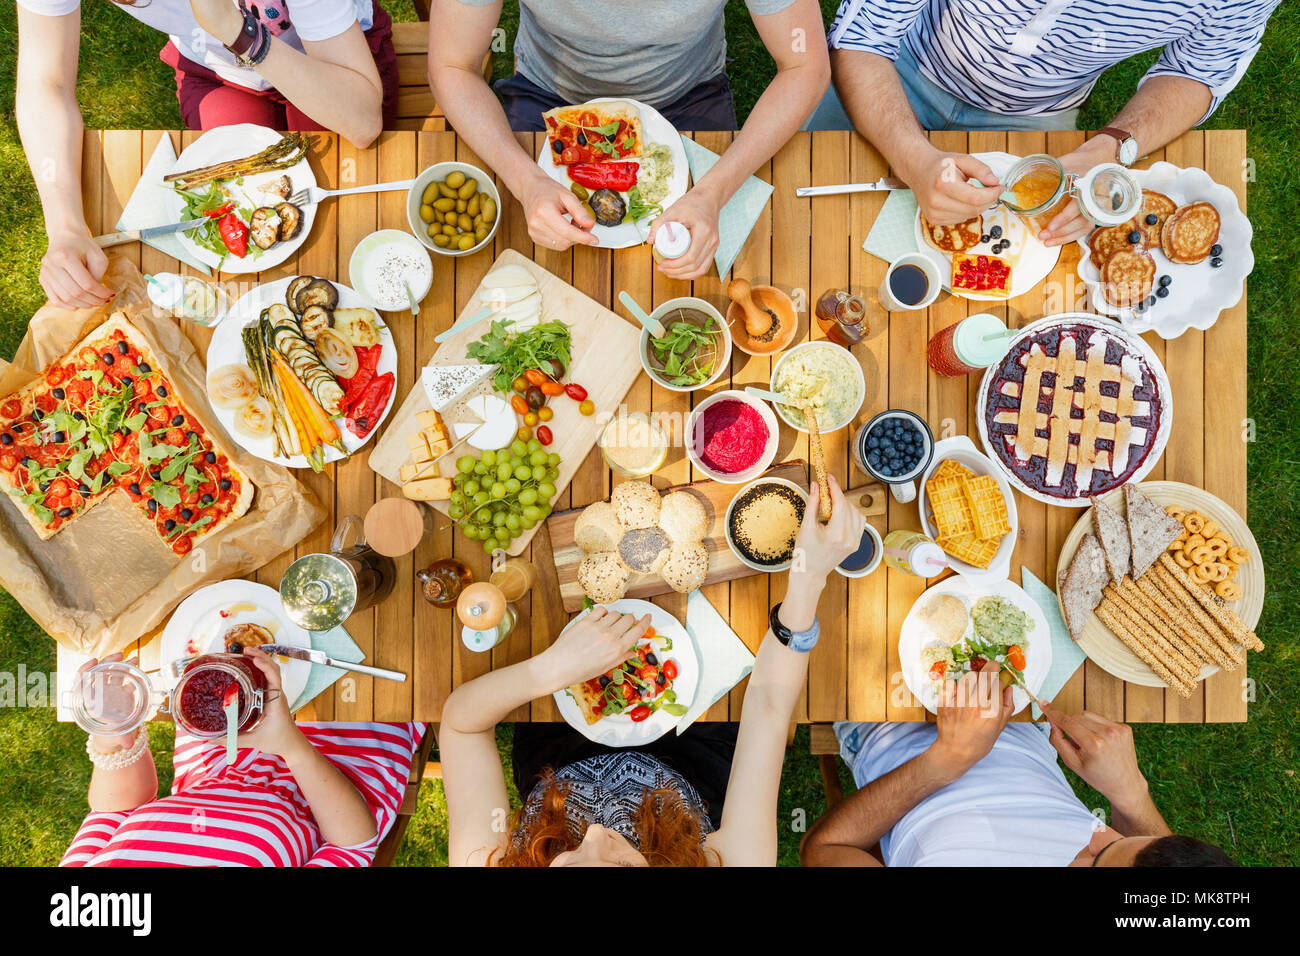 Friends eating healthy food like vegan pizza and fruit outdoors in the park on a rustic table - Stock Image